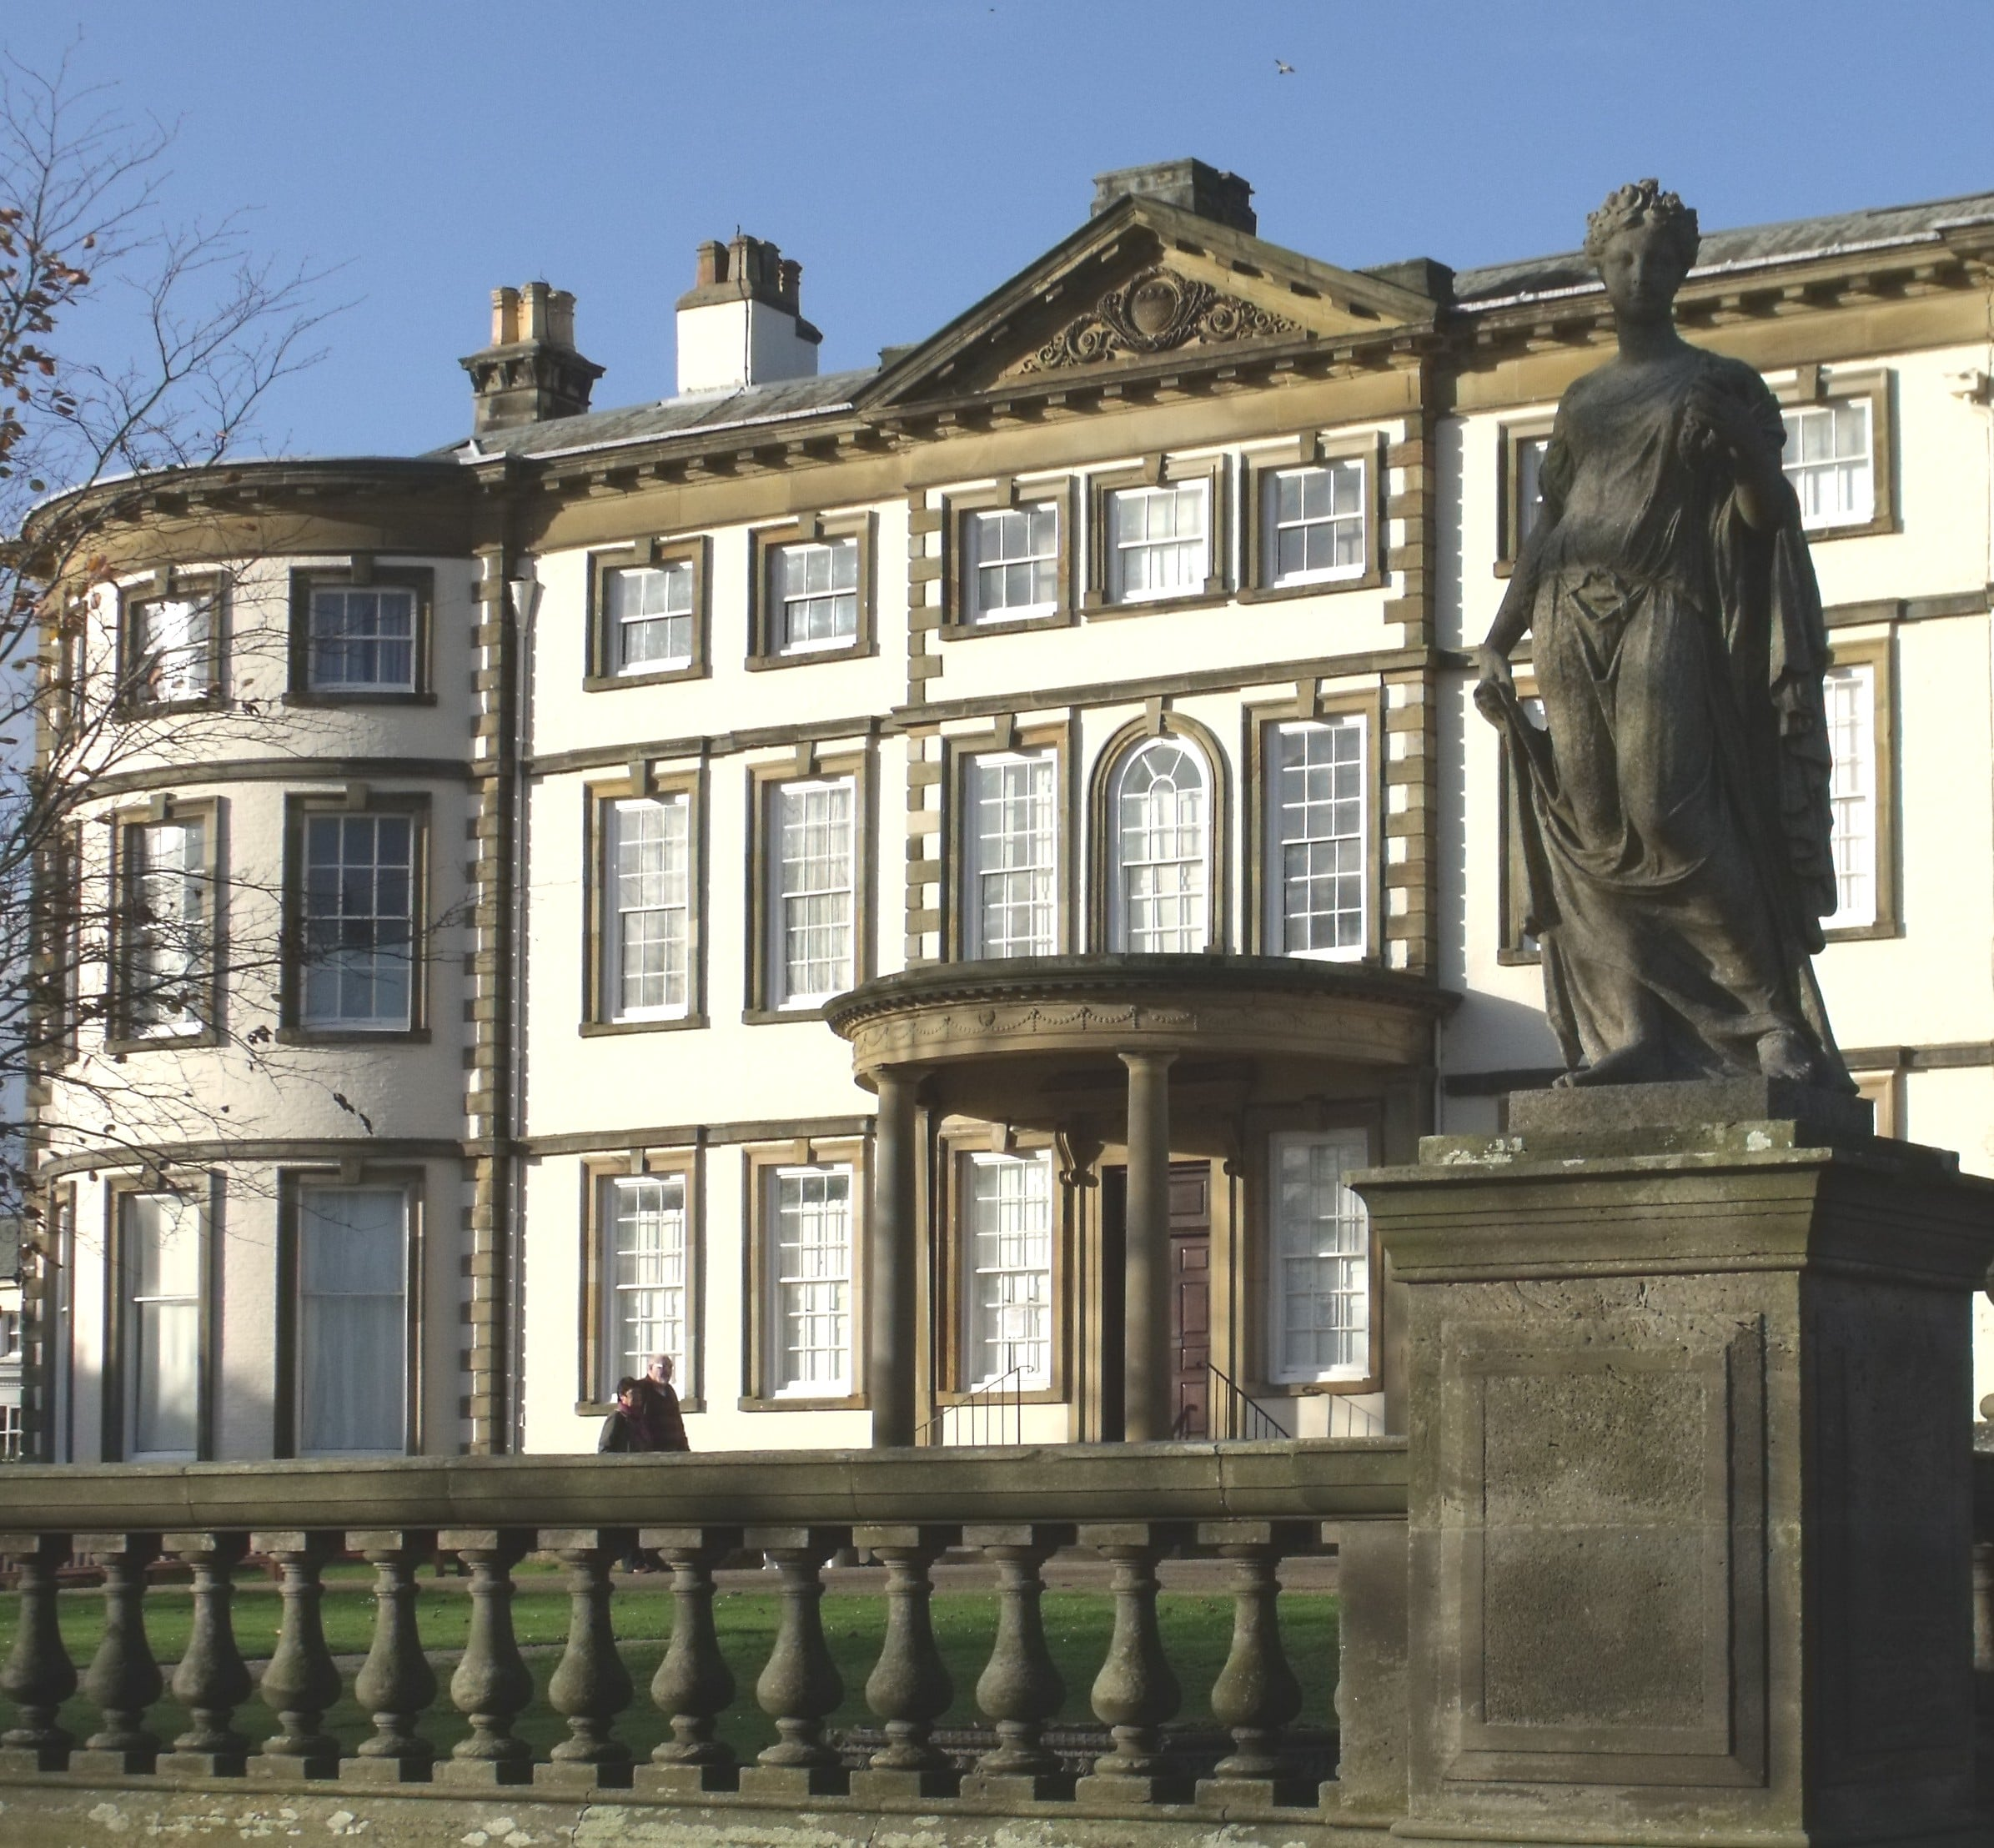 Sewerby Hall and Art Gallery